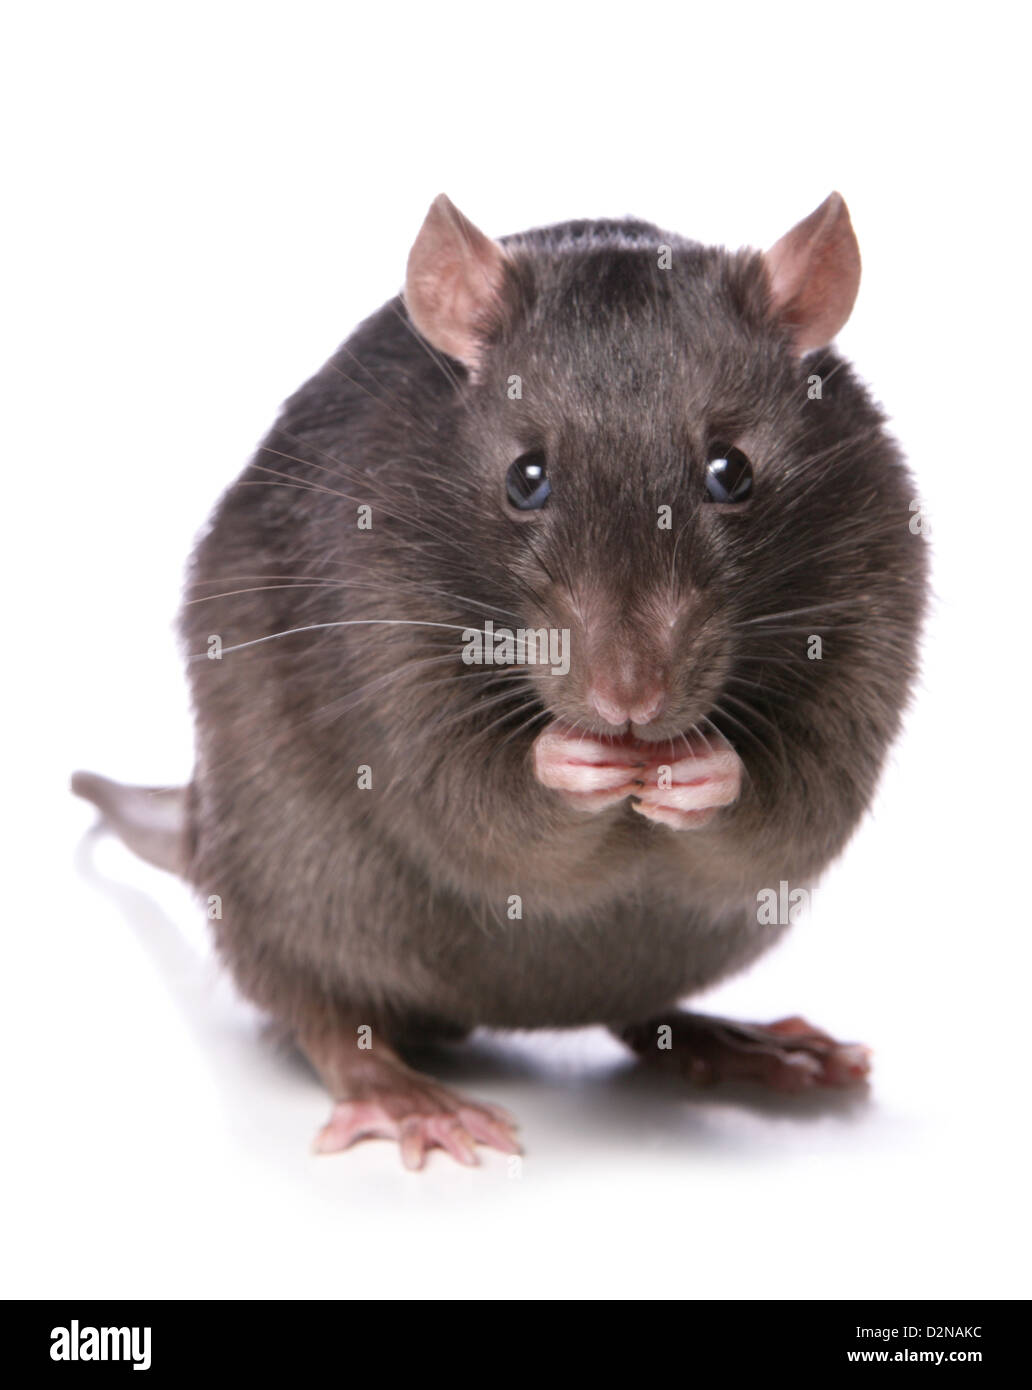 rat eating studio cutout - Stock Image